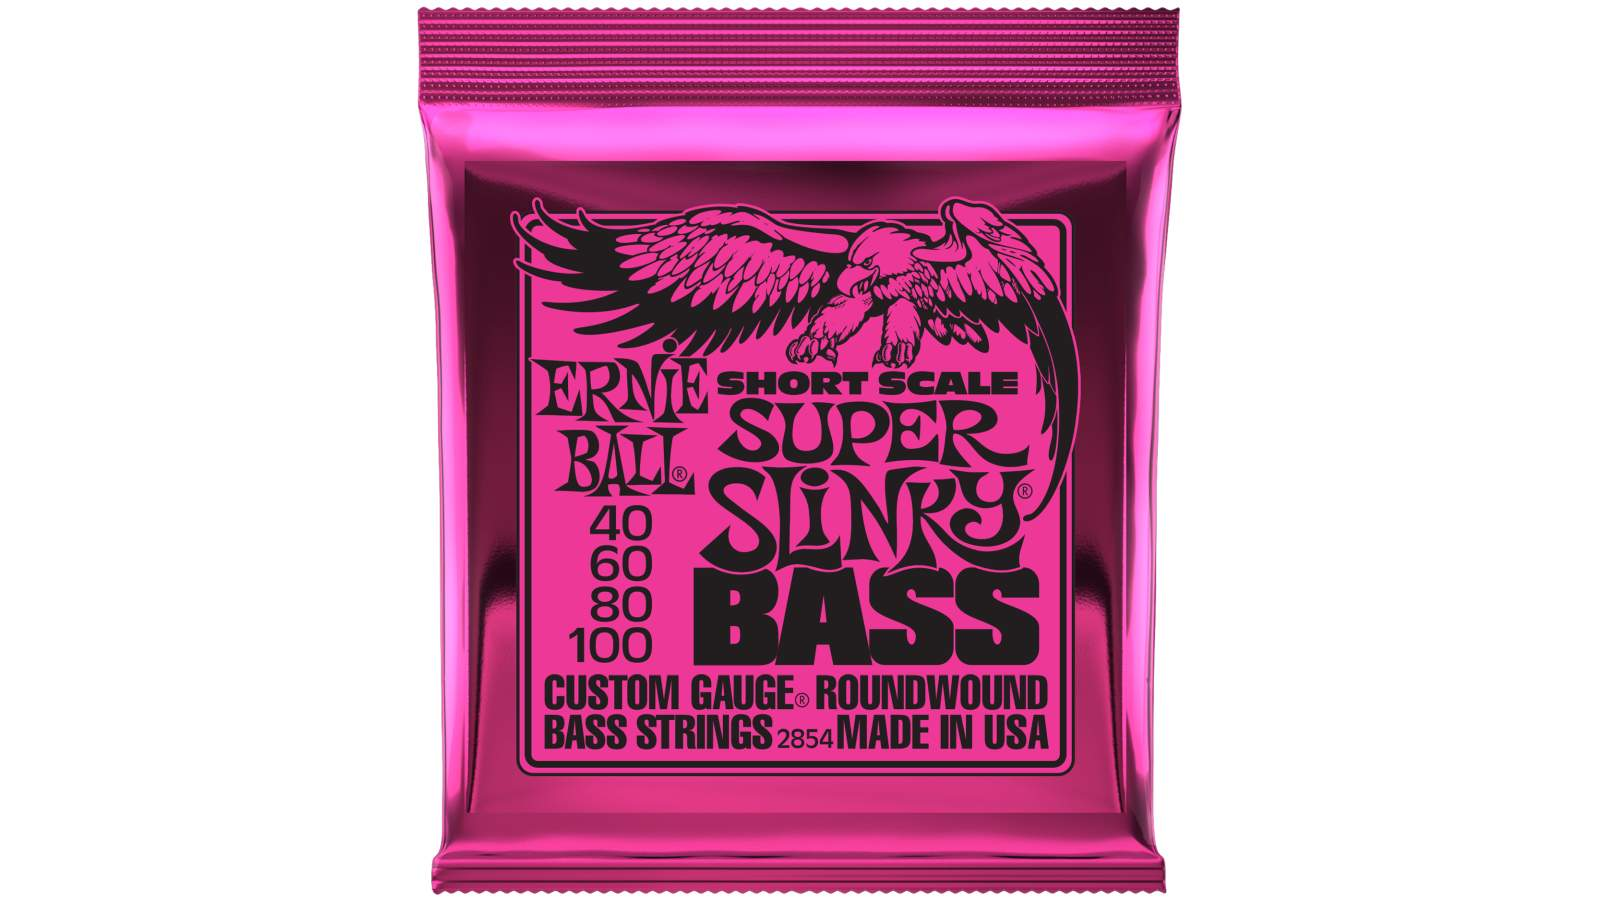 Ernie Ball EB-2854 Super Slinky Bass Saiten Short Scale 040-100